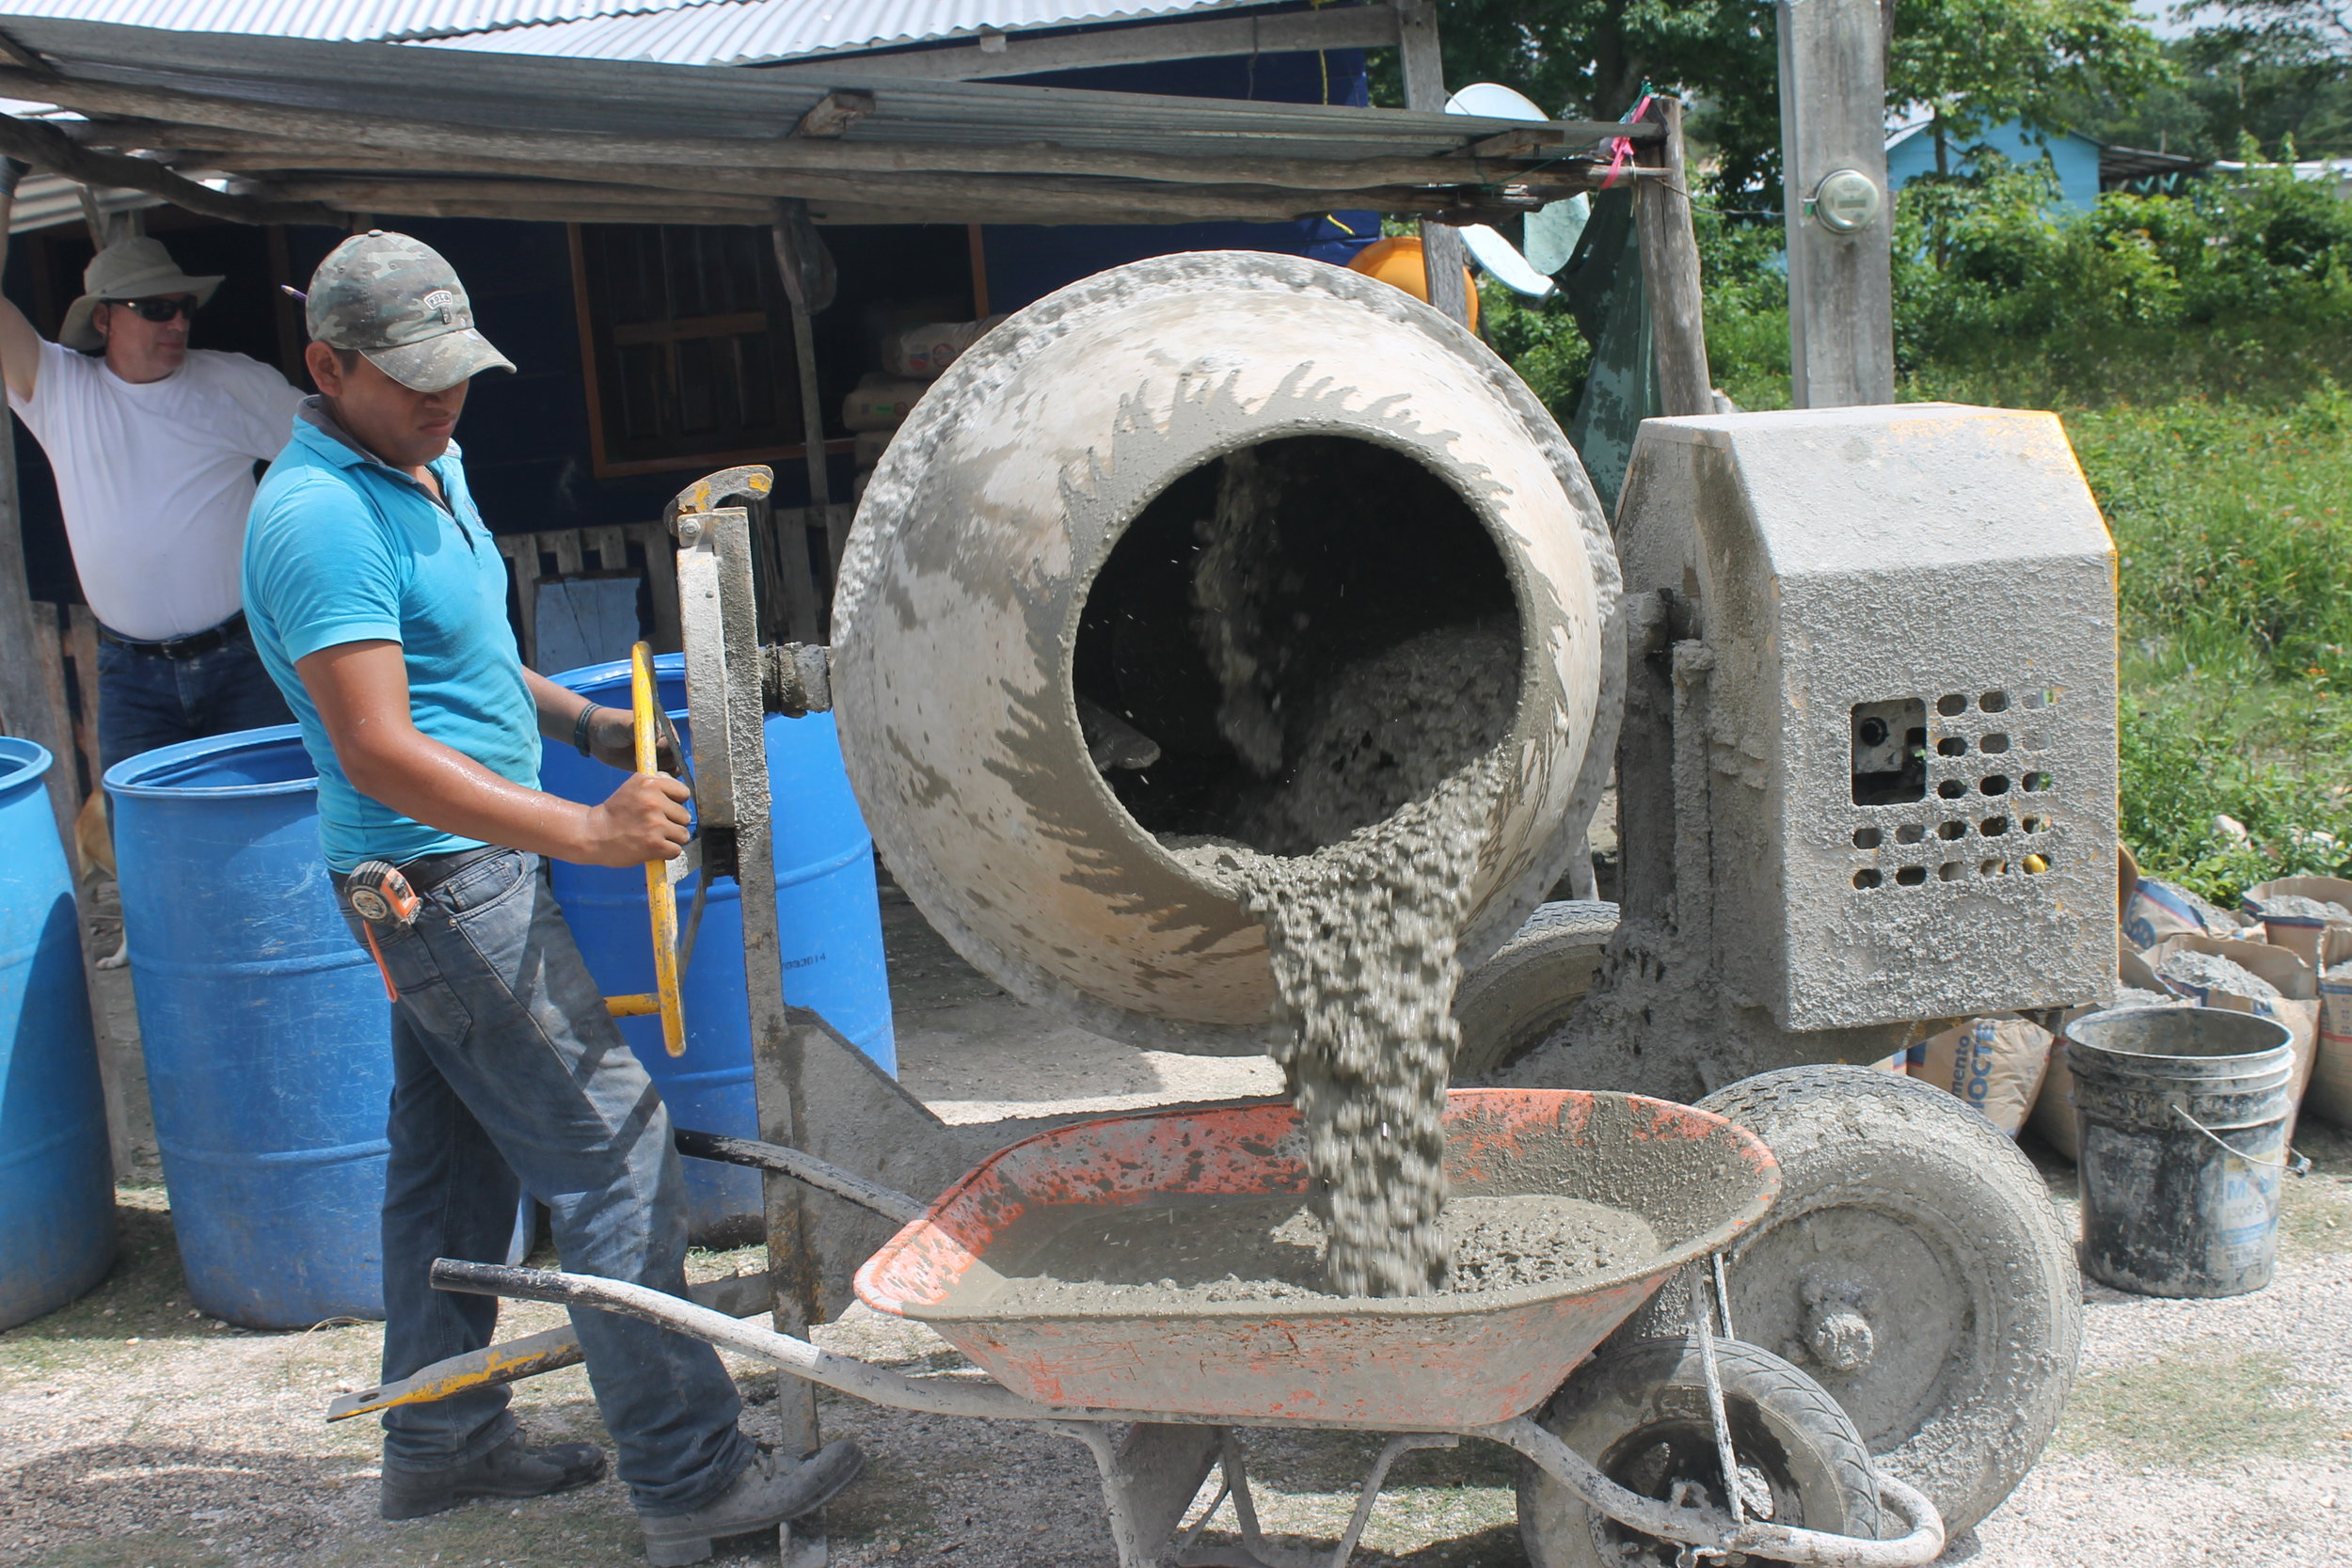 Isaias operating the concrete mixer.